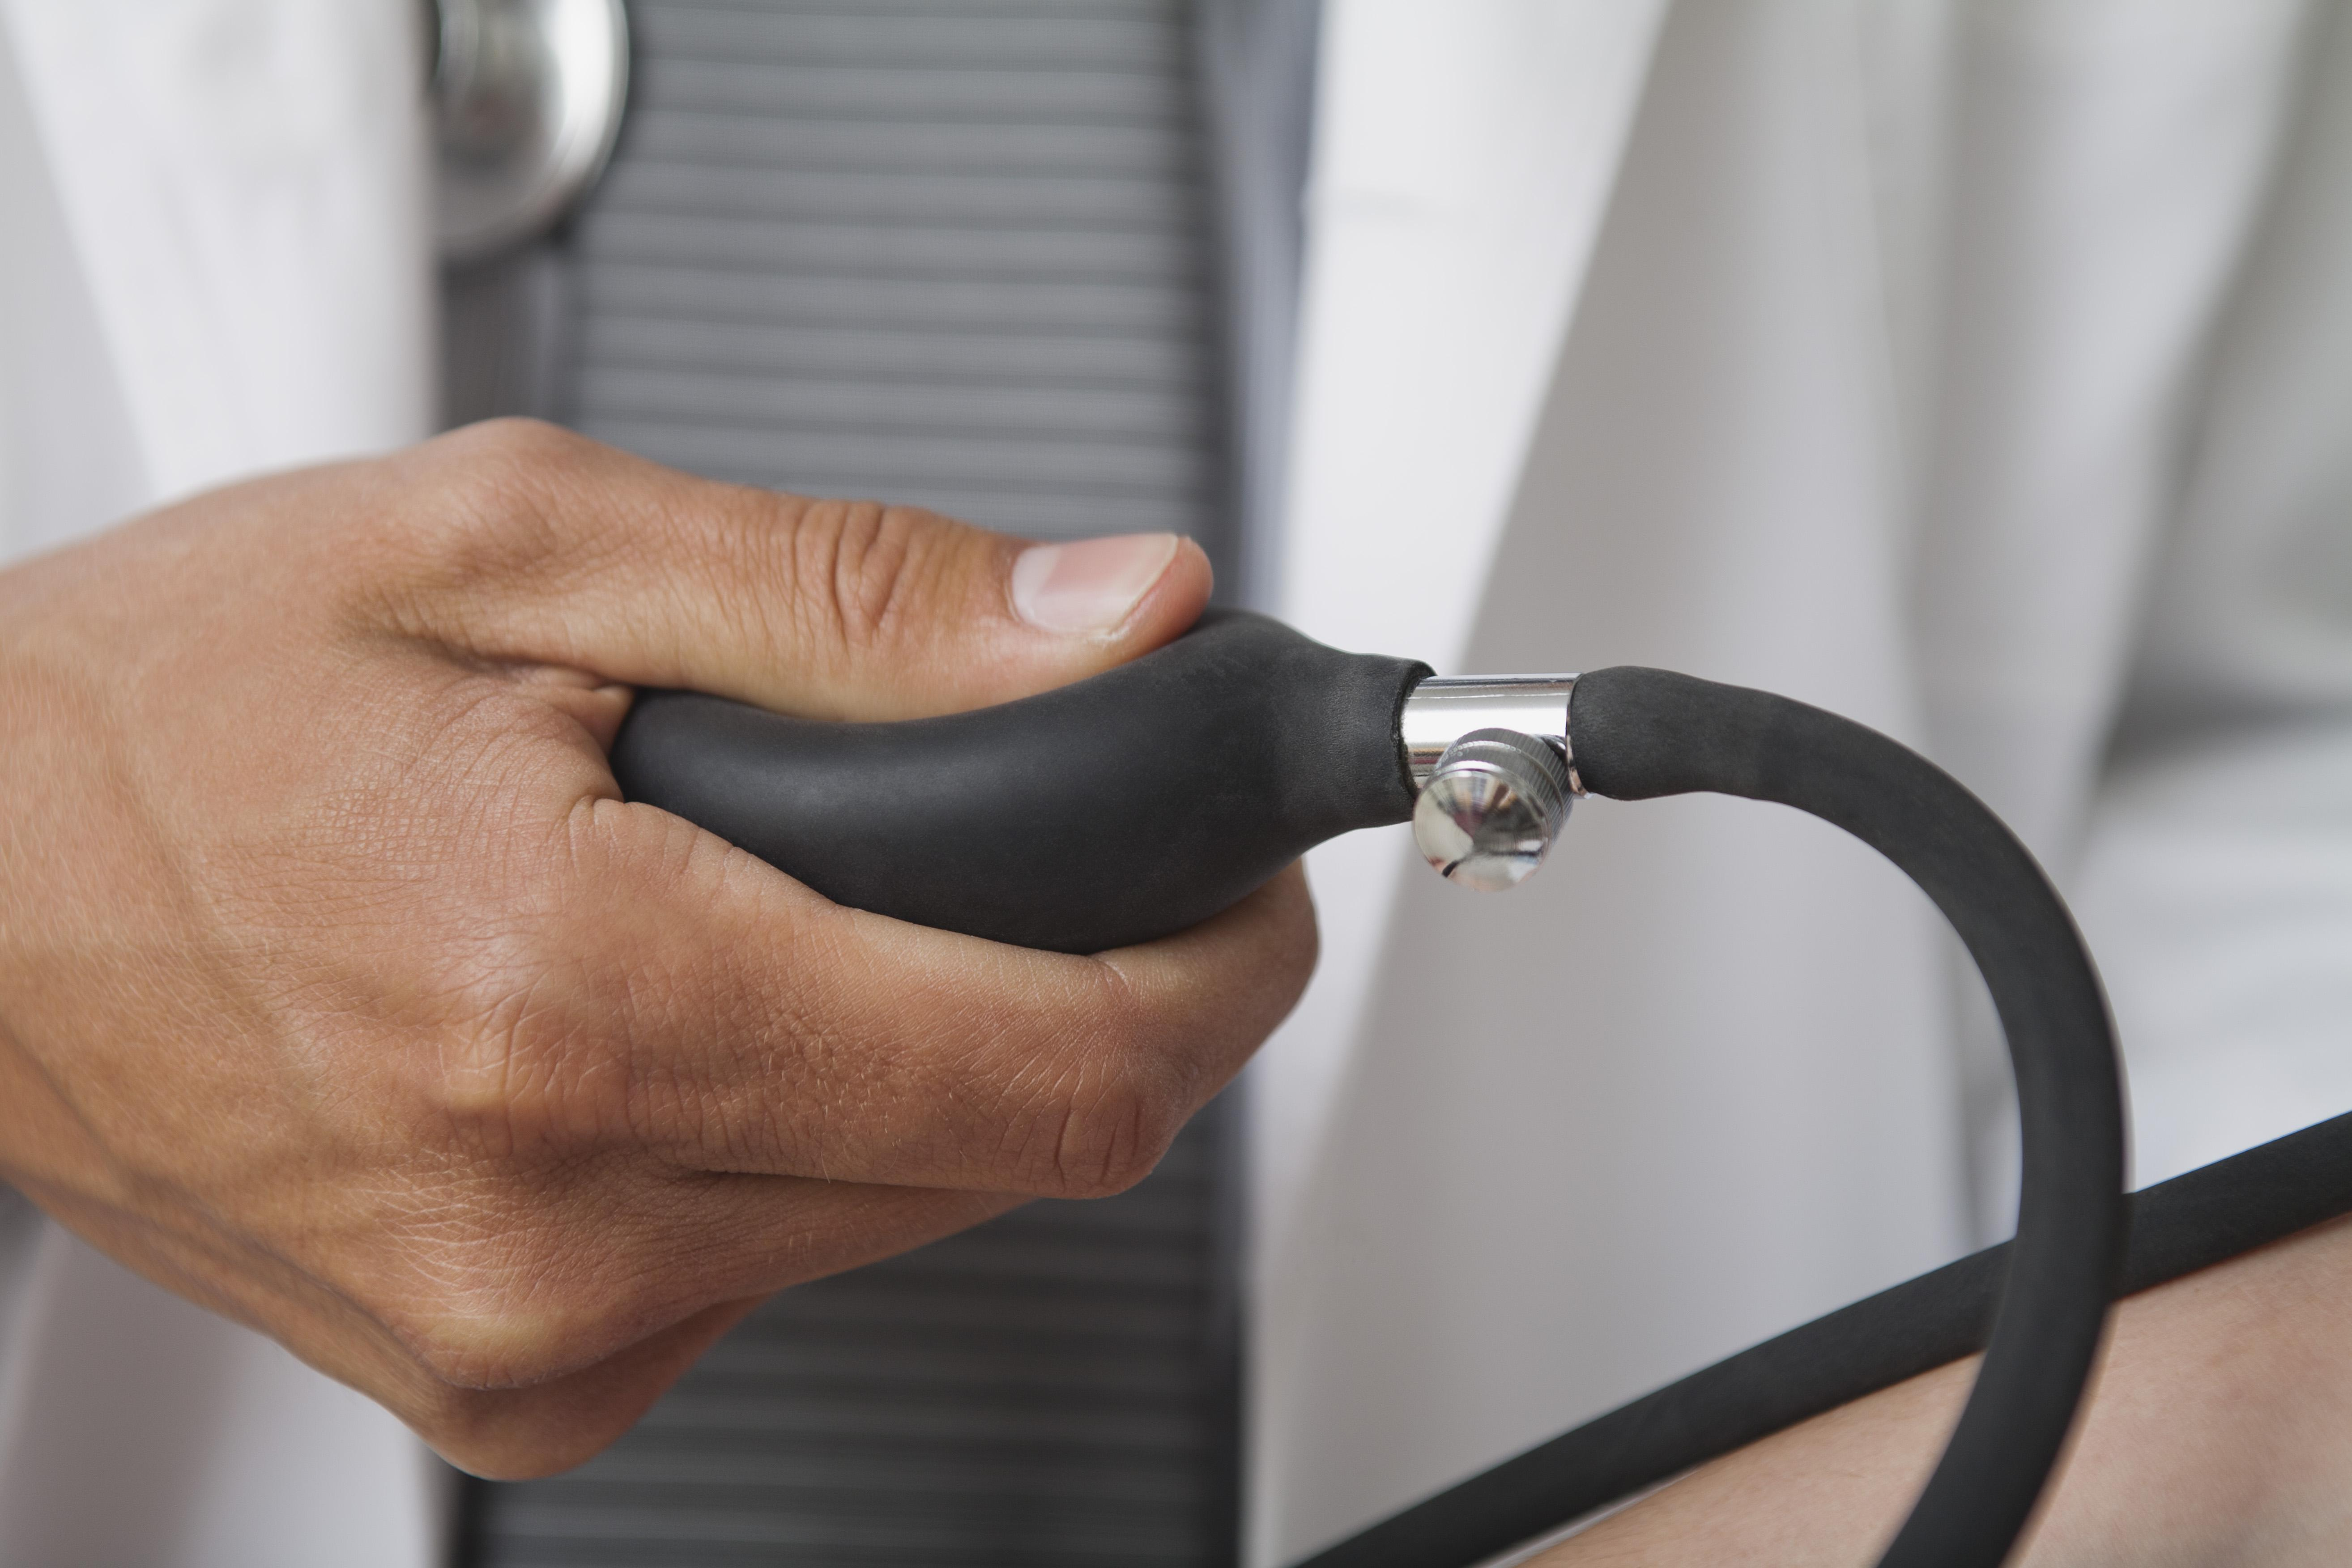 Doctor squeezing bulb on blood pressure gauge, cropped